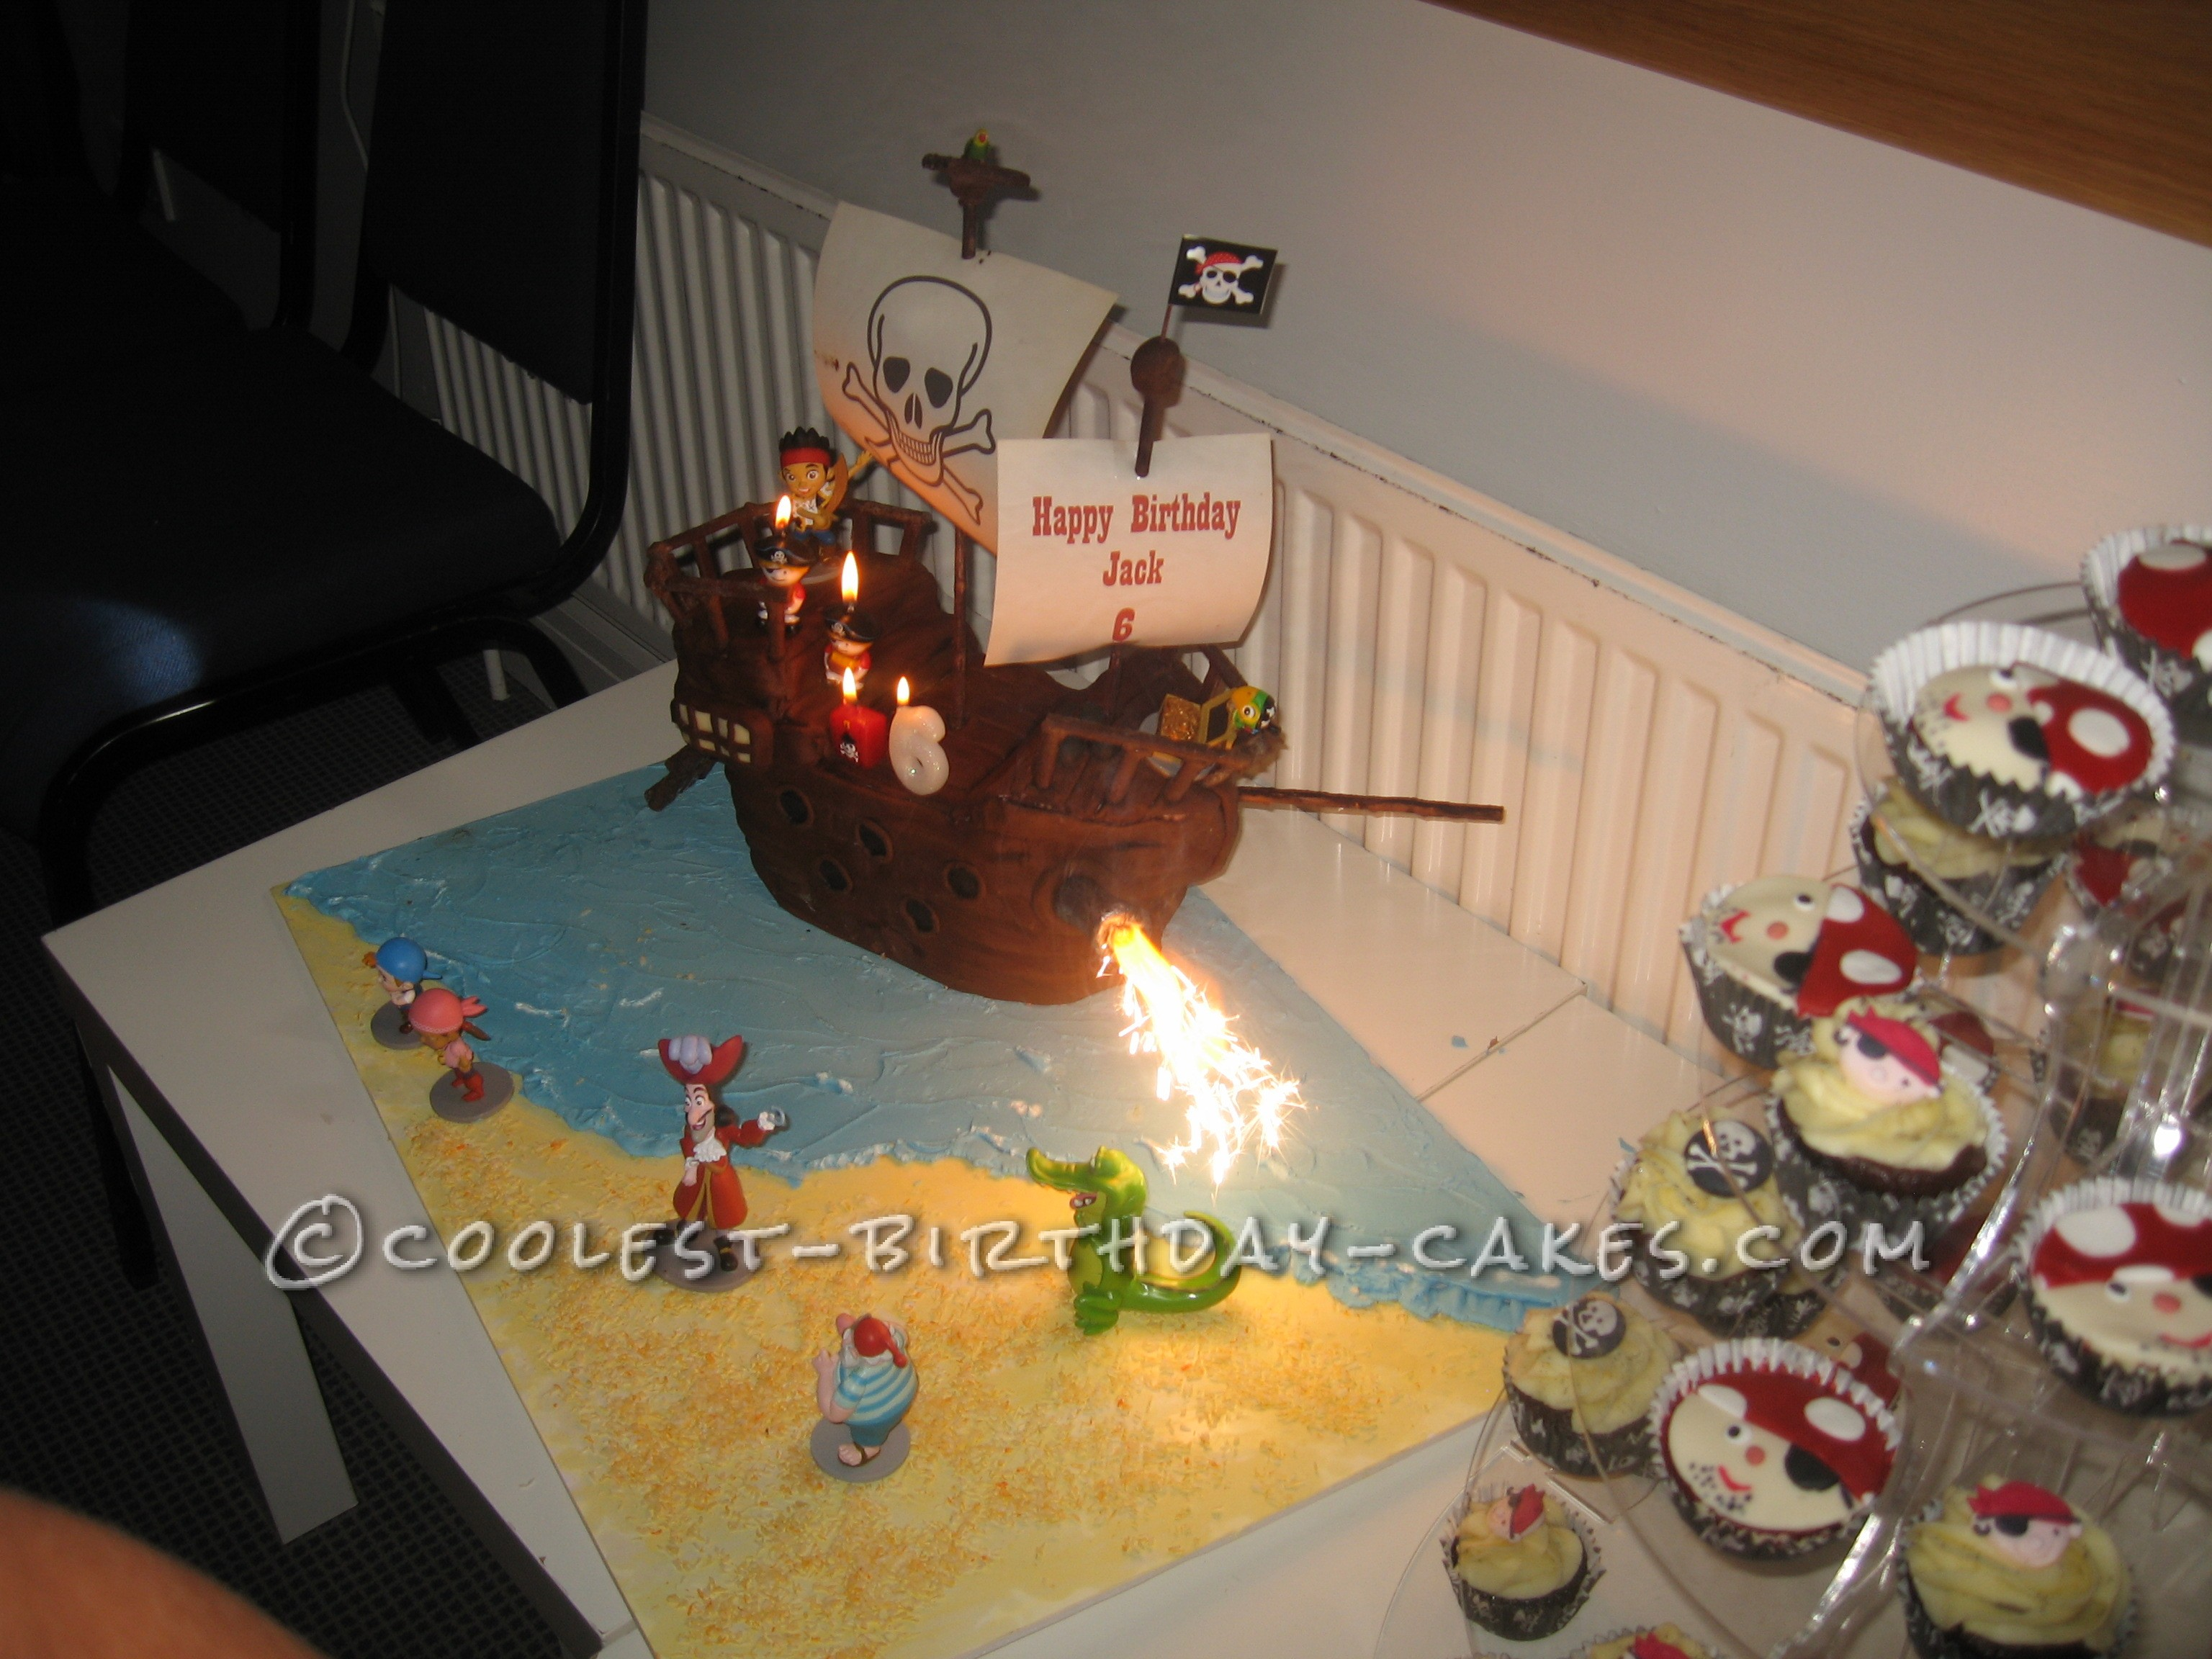 Jake and the Neverland Pirates Ship Cake